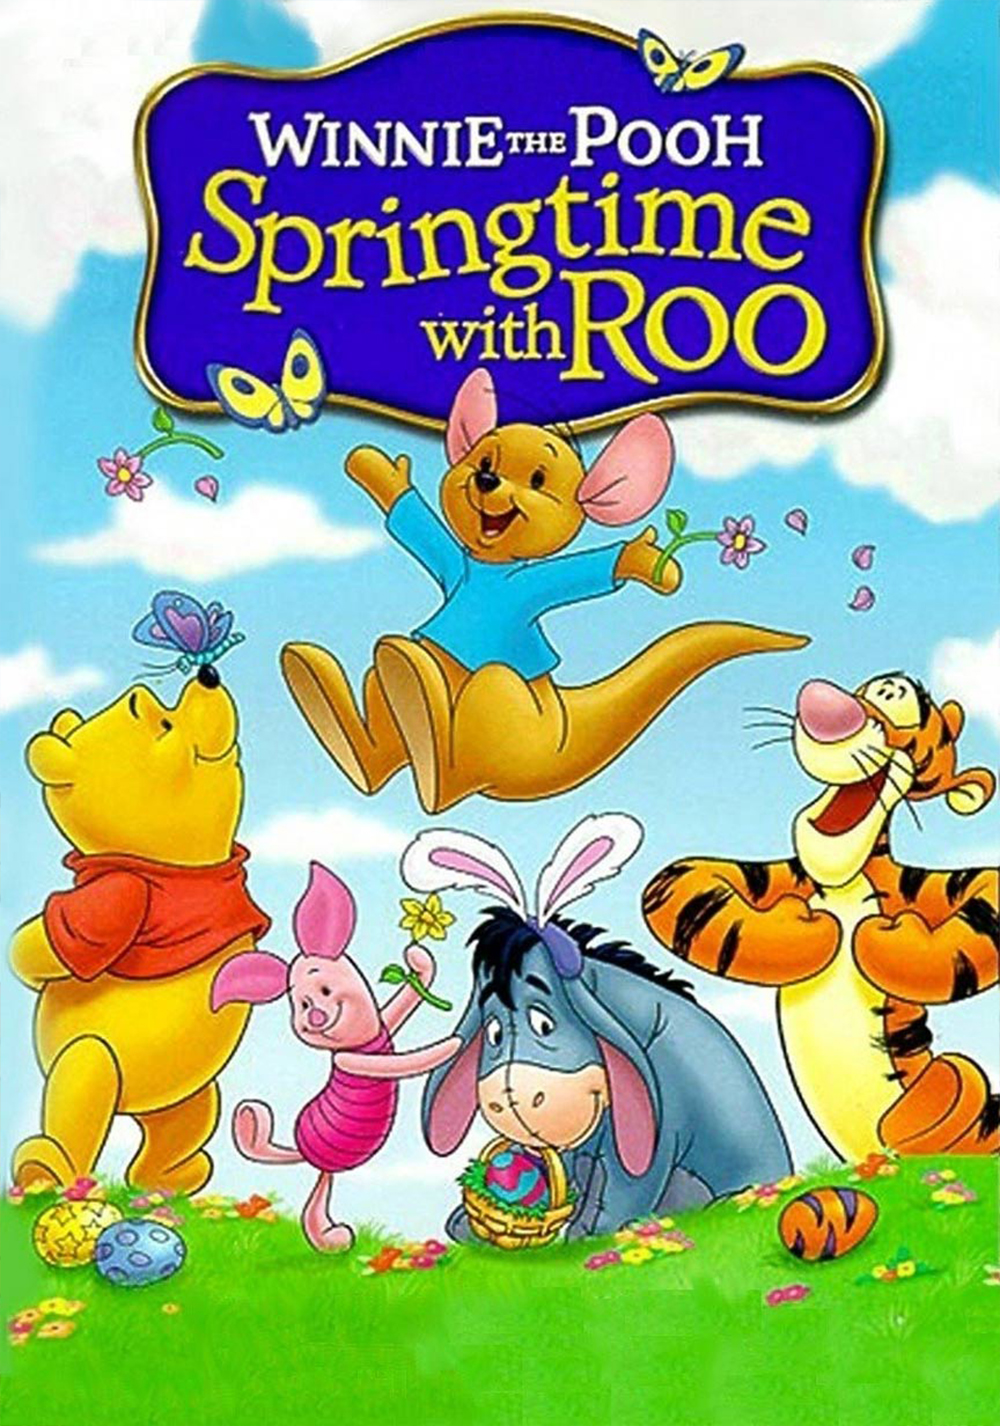 SPRINGTIME WITH ROO poster.jpg